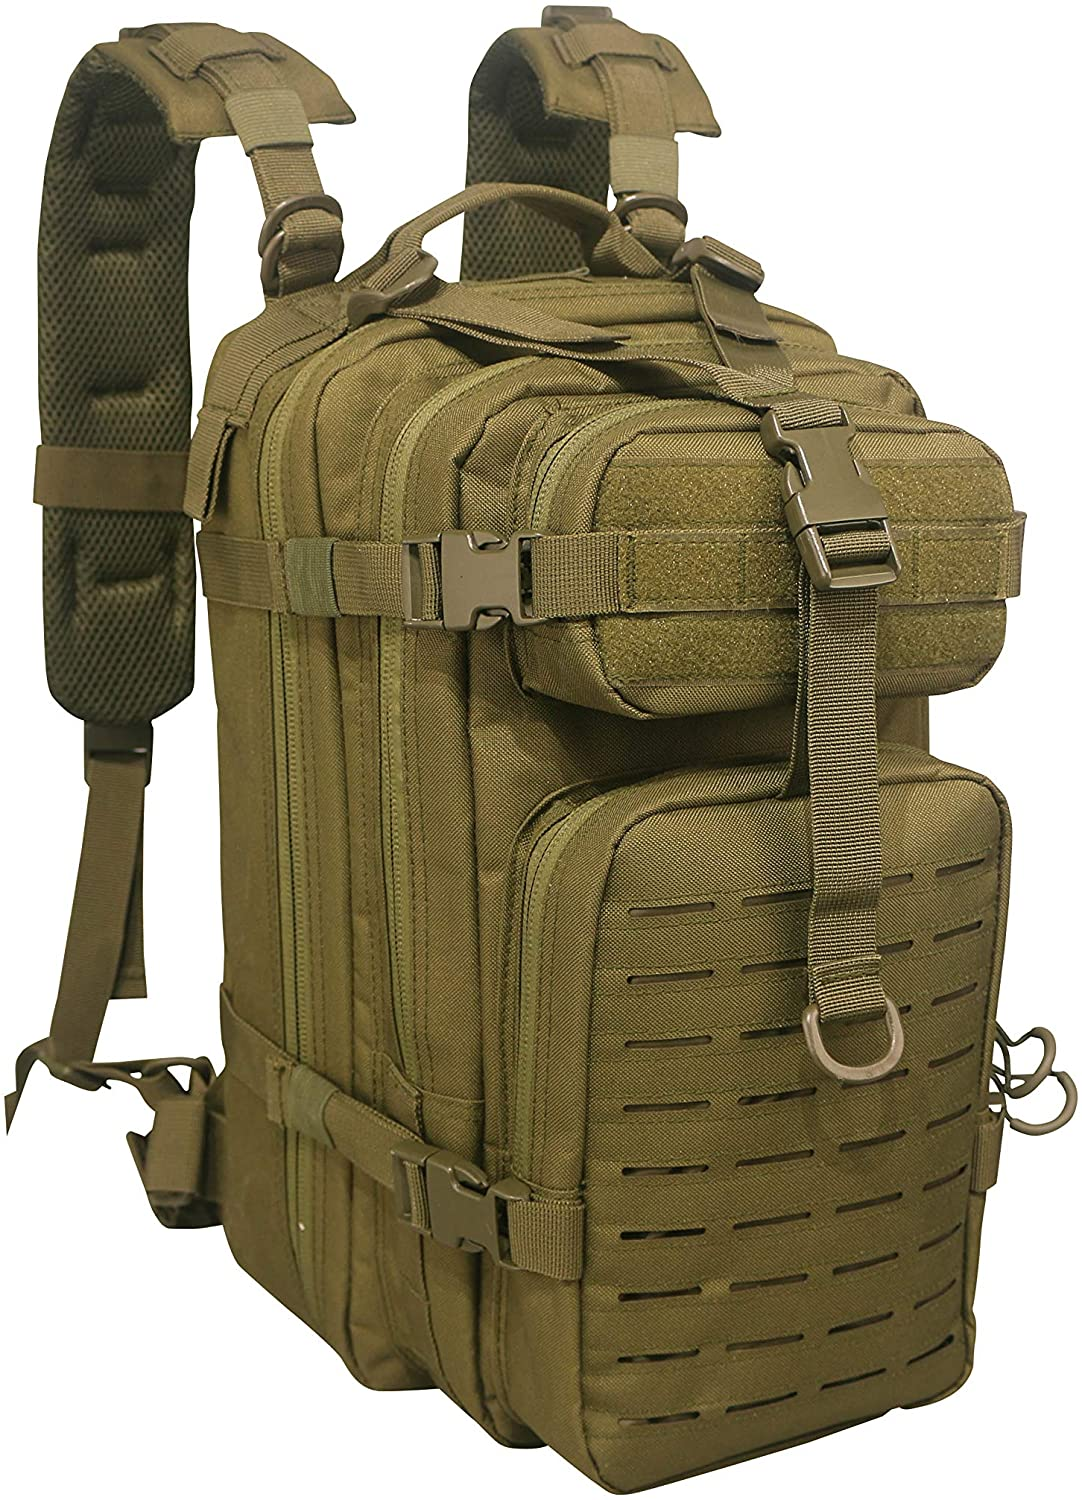 Lightning X Stocked EMS/EMT Trauma & Bleeding First Aid, Tactical rescue medic backpack, hiking style